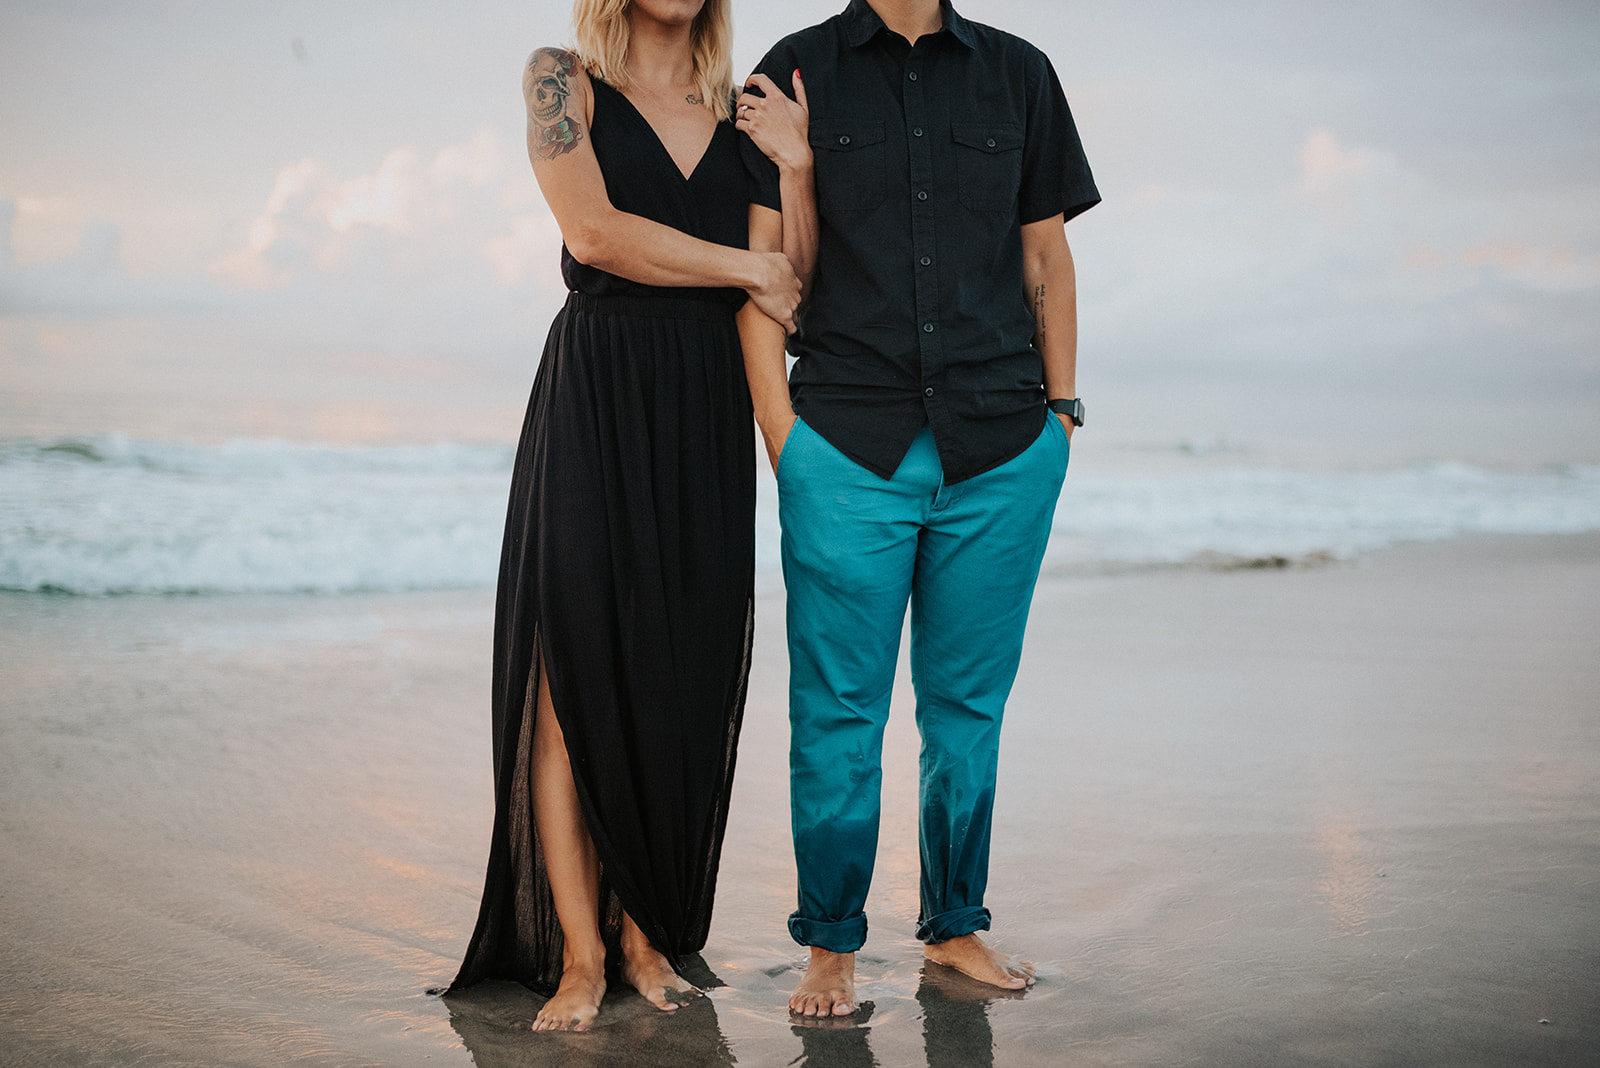 downtown cocoa beach florida same sex engagement photos